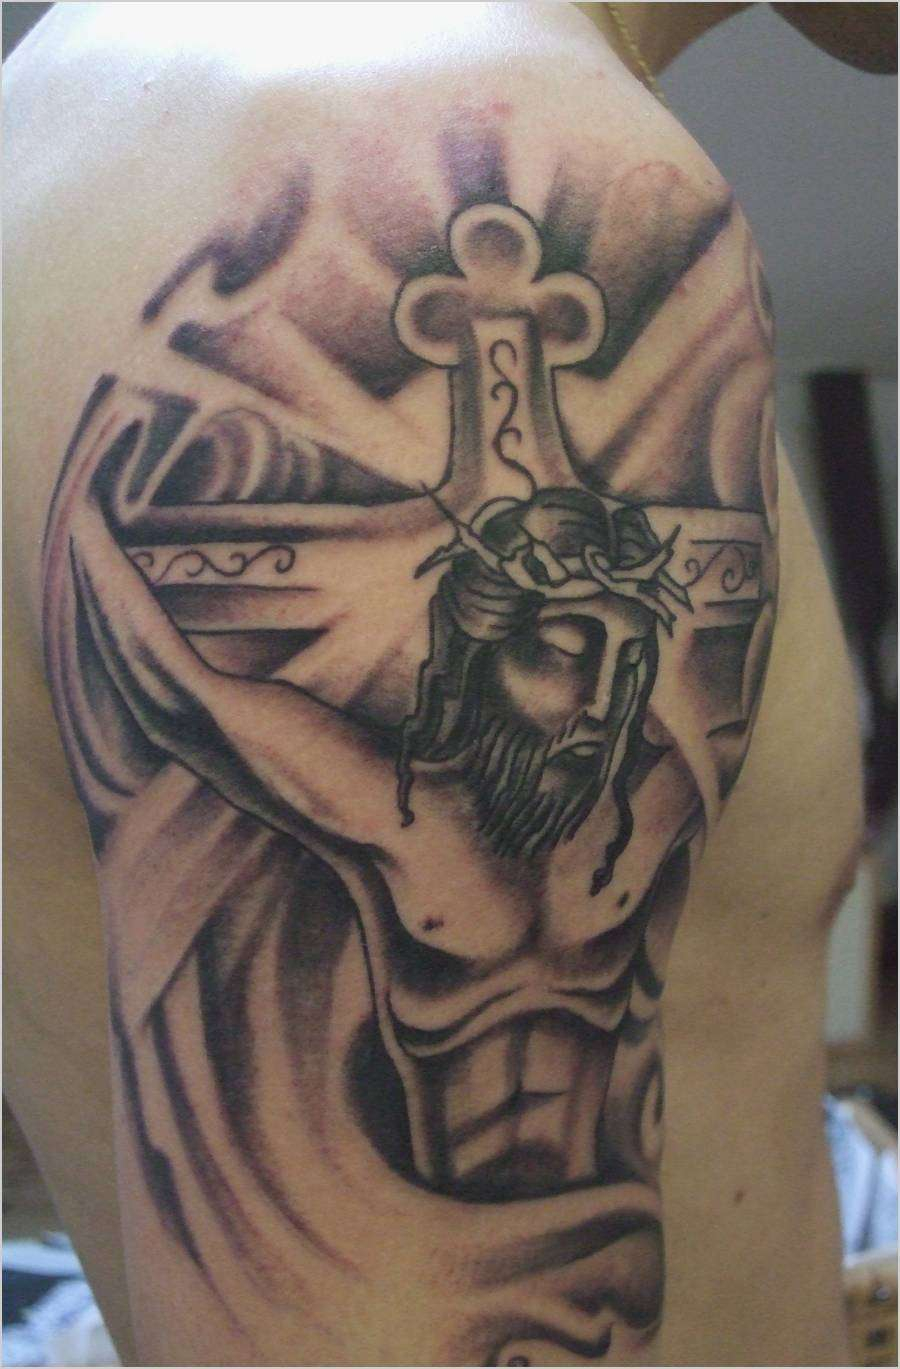 Jesus Tattoo Pictures 9001369 Christ Cross Tattoos Macyro inside dimensions 900 X 1369